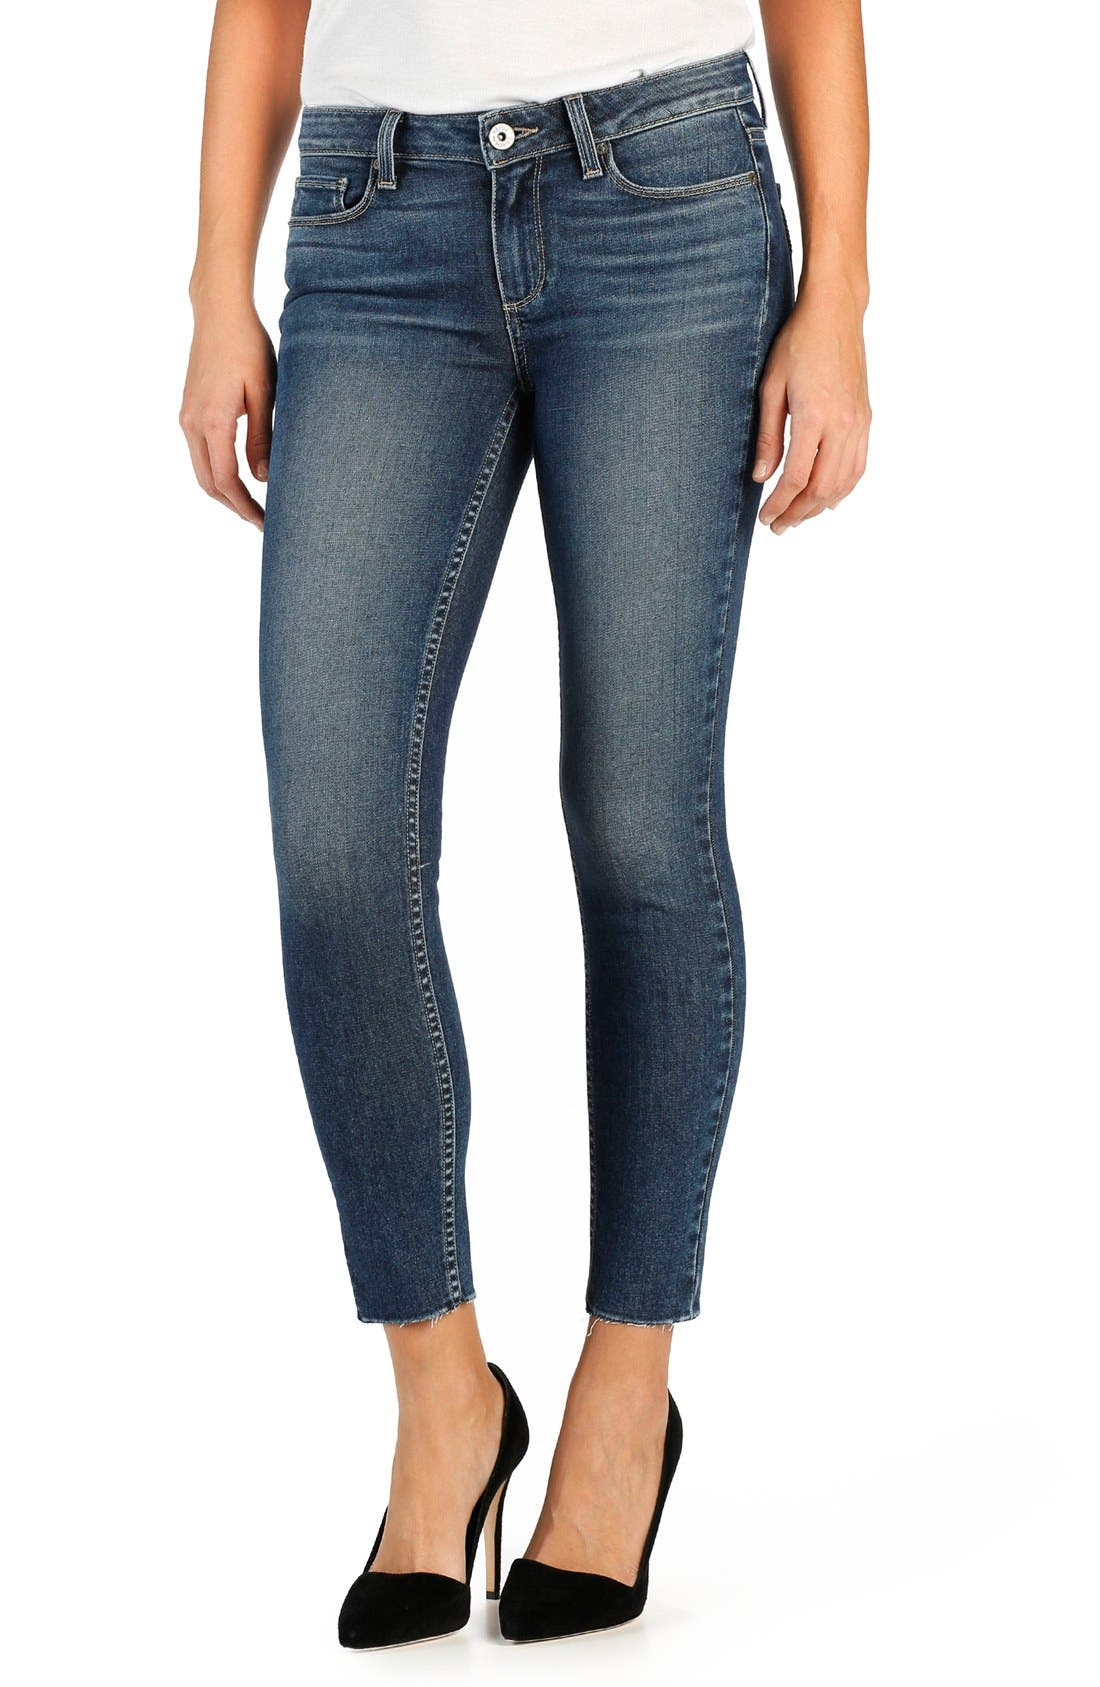 Alternate Image 1 Selected - PAIGE 'Legacy - Verdugo' Ankle Ultra Skinny Jeans (Axel)